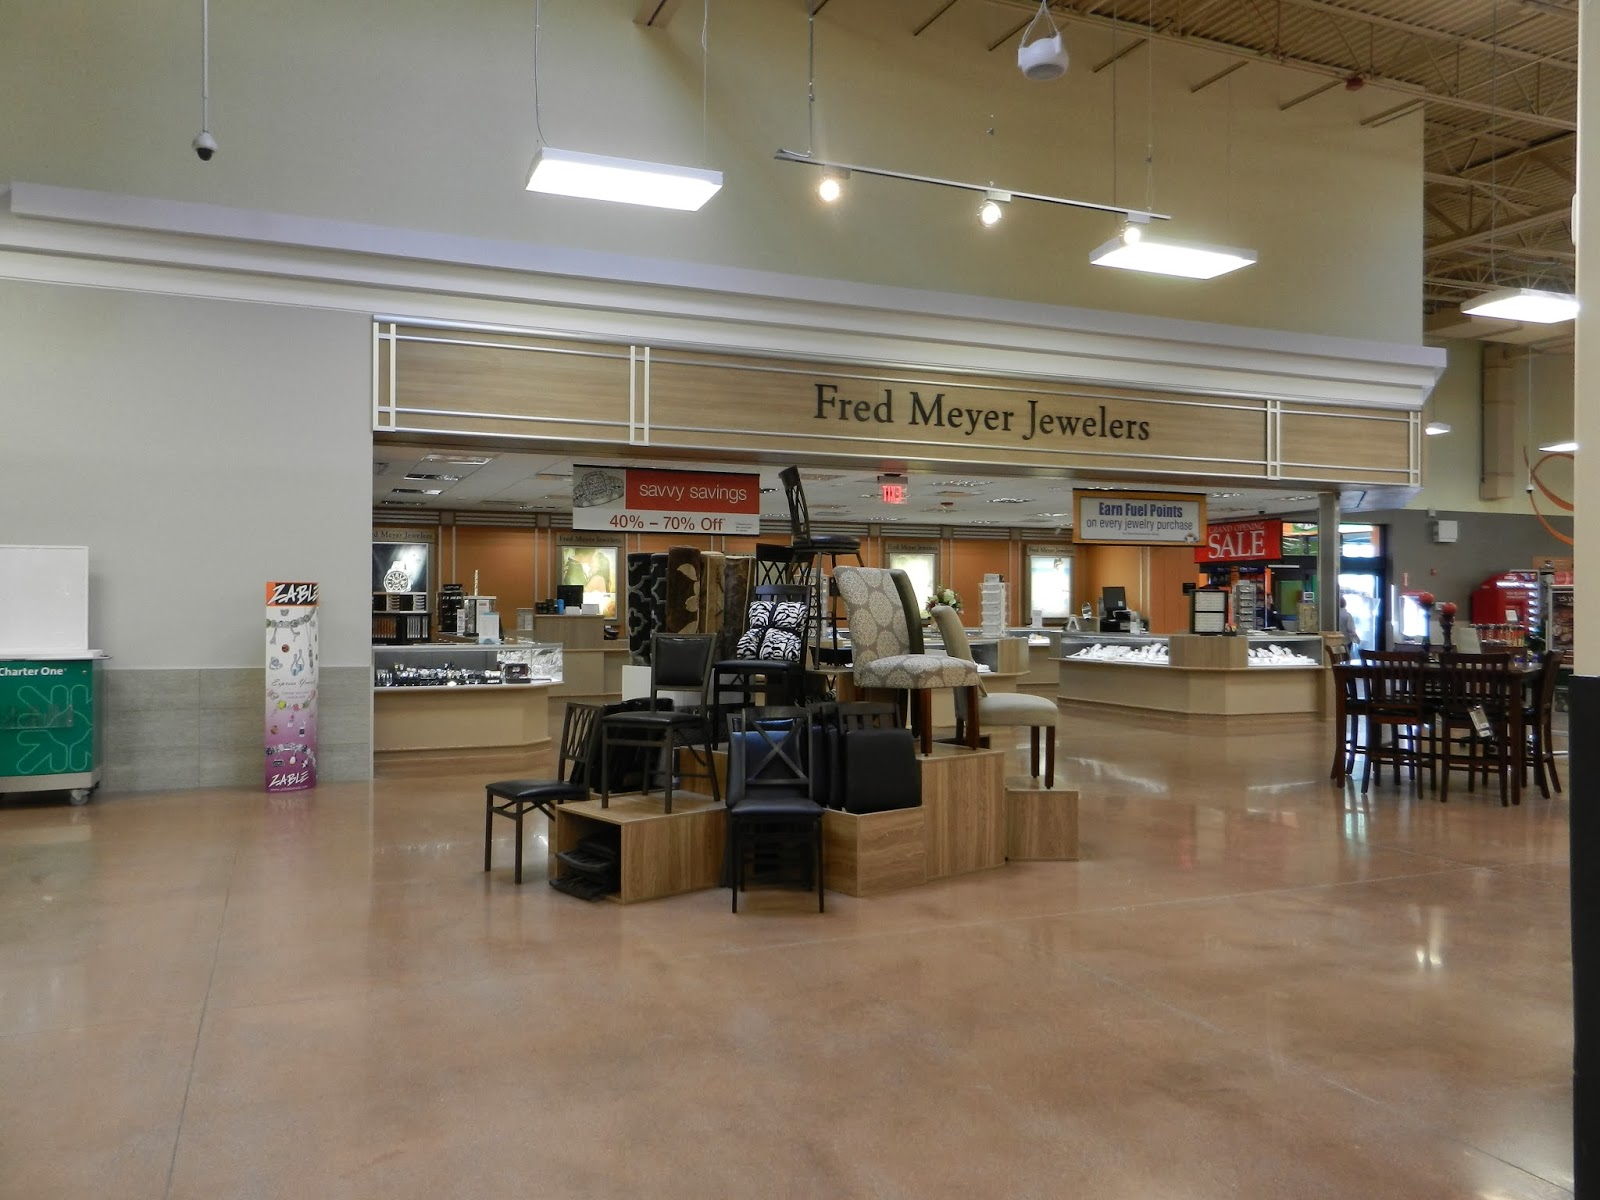 Wedding Rings Fred Meyer Jewelers 99 Beautiful A Busy Mom us